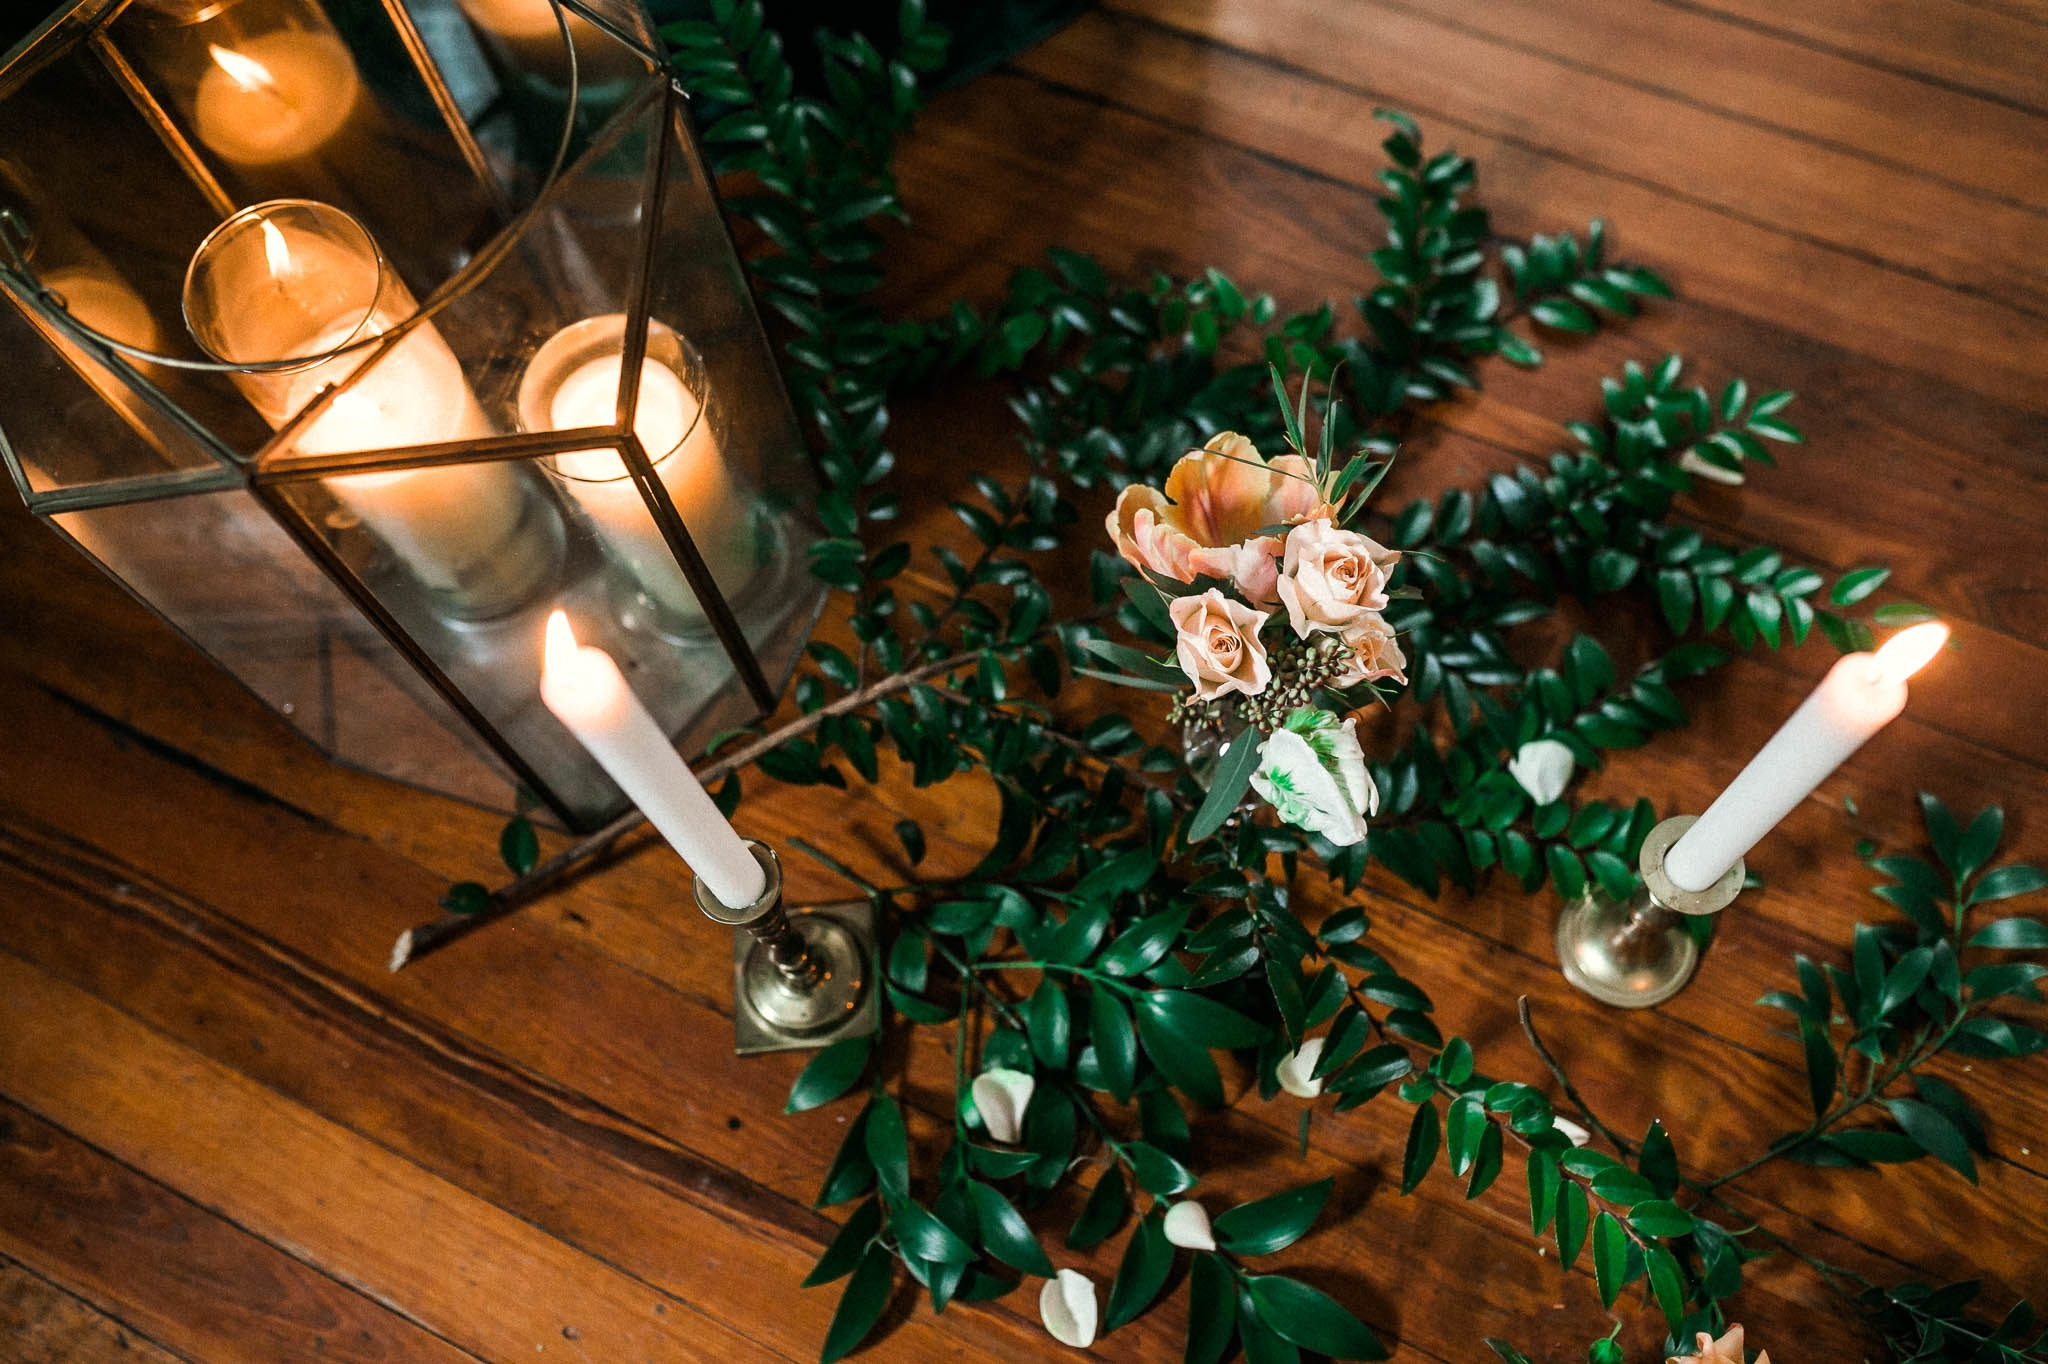 Detail shot of the flower display and candles decorations for the styled shoot - Emerald City Green Wedding Inspiration - Oahu Hawaii Wedding Photographer - Johanna Dye Photography